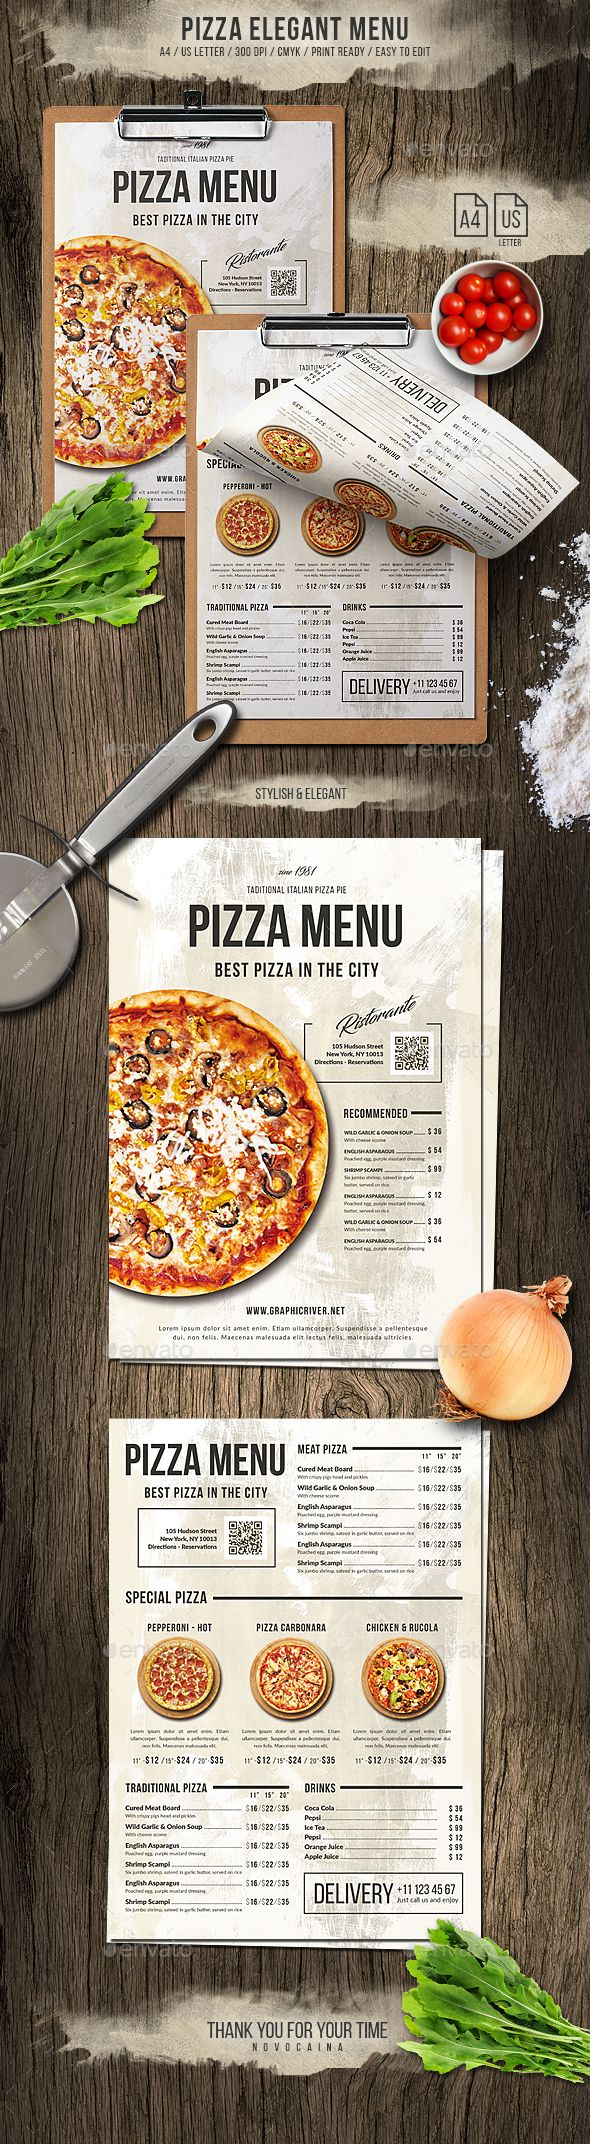 Pizza Elegant Menu - A4 and US Letter - #Food #Menus Print Templates Download here: https://graphicriver.net/item/pizza-elegant-menu-a4-and-us-letter/20030786?ref=alena994